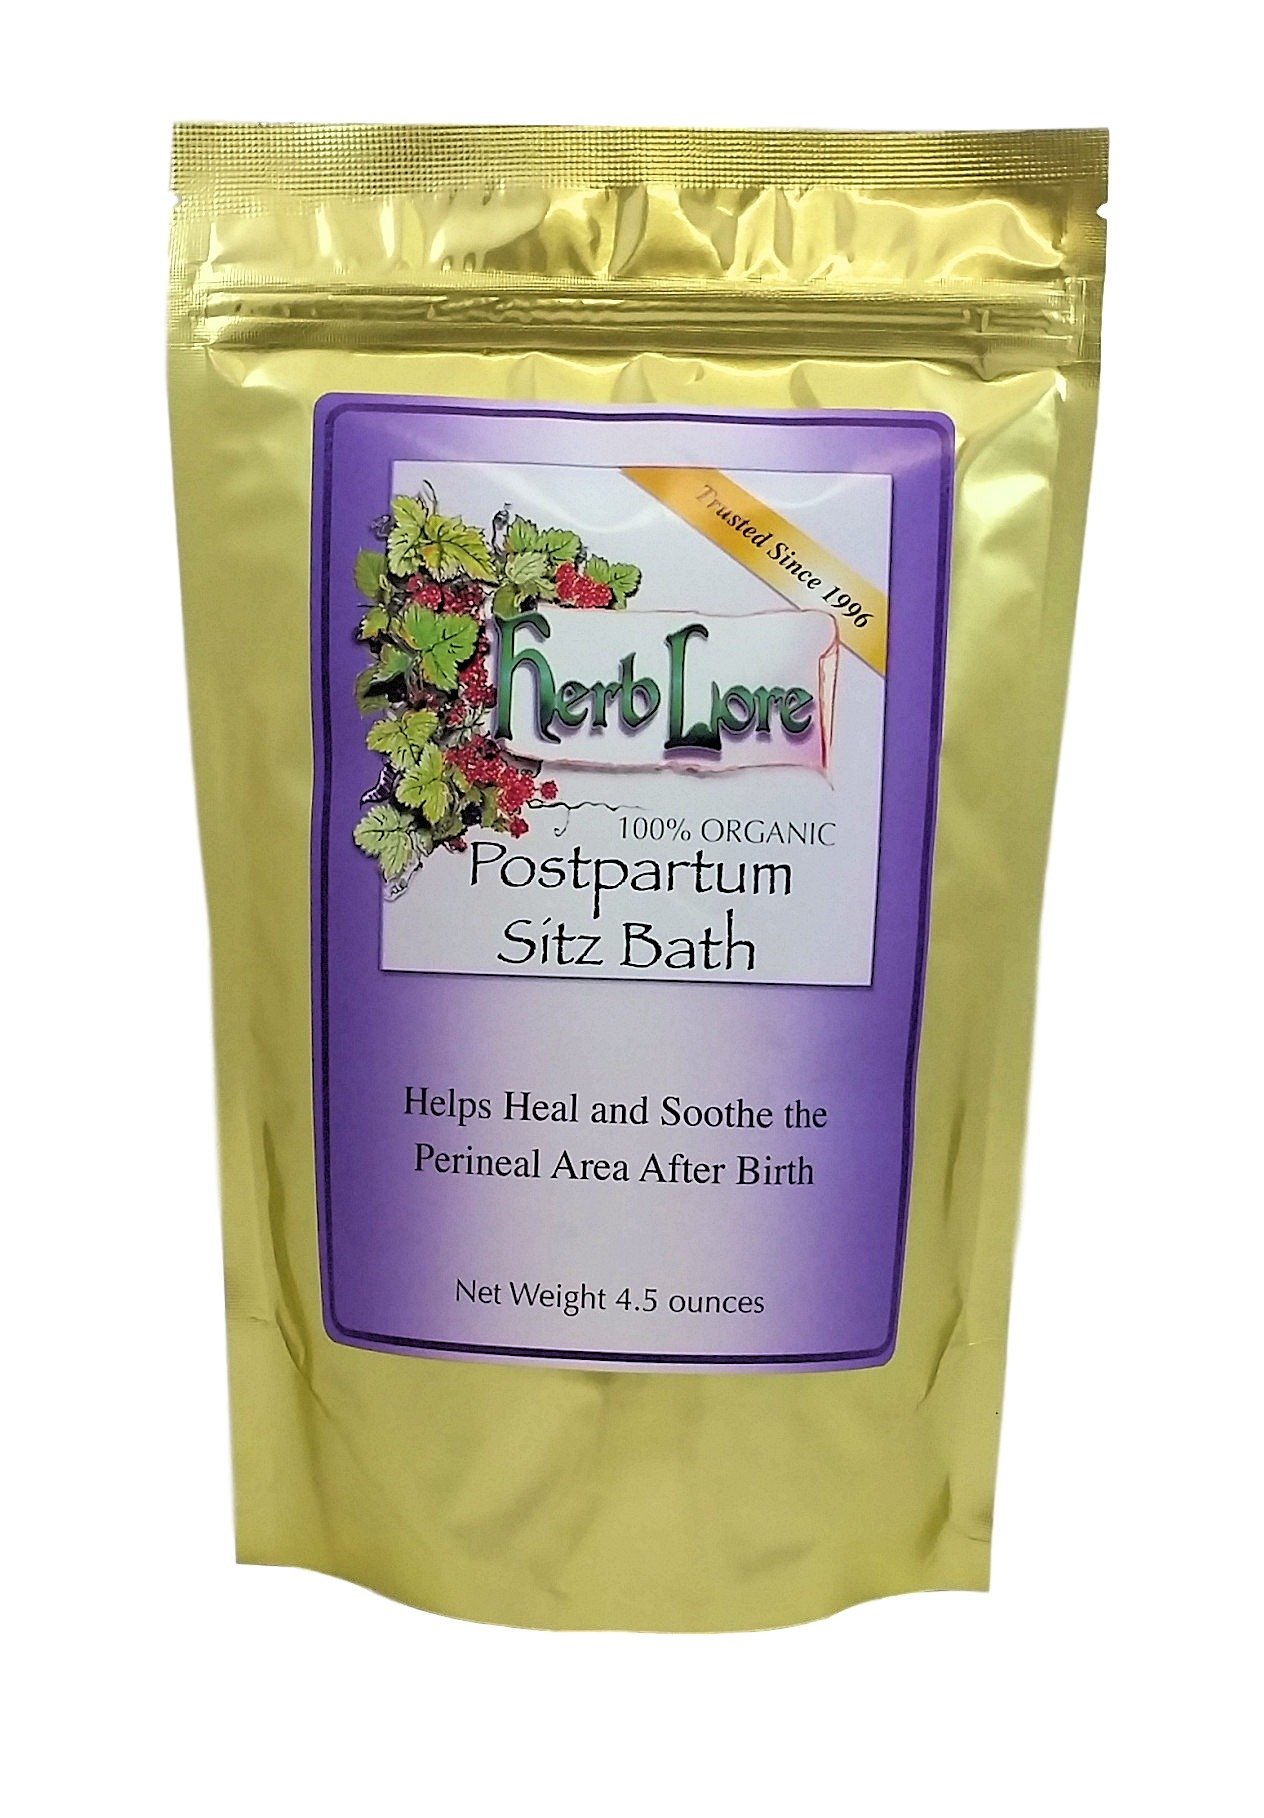 Herb Lore Organic Postpartum Sitz Bath Herbs - Heals and Soothes Sensitive Perineal Tissue After Giving Birth